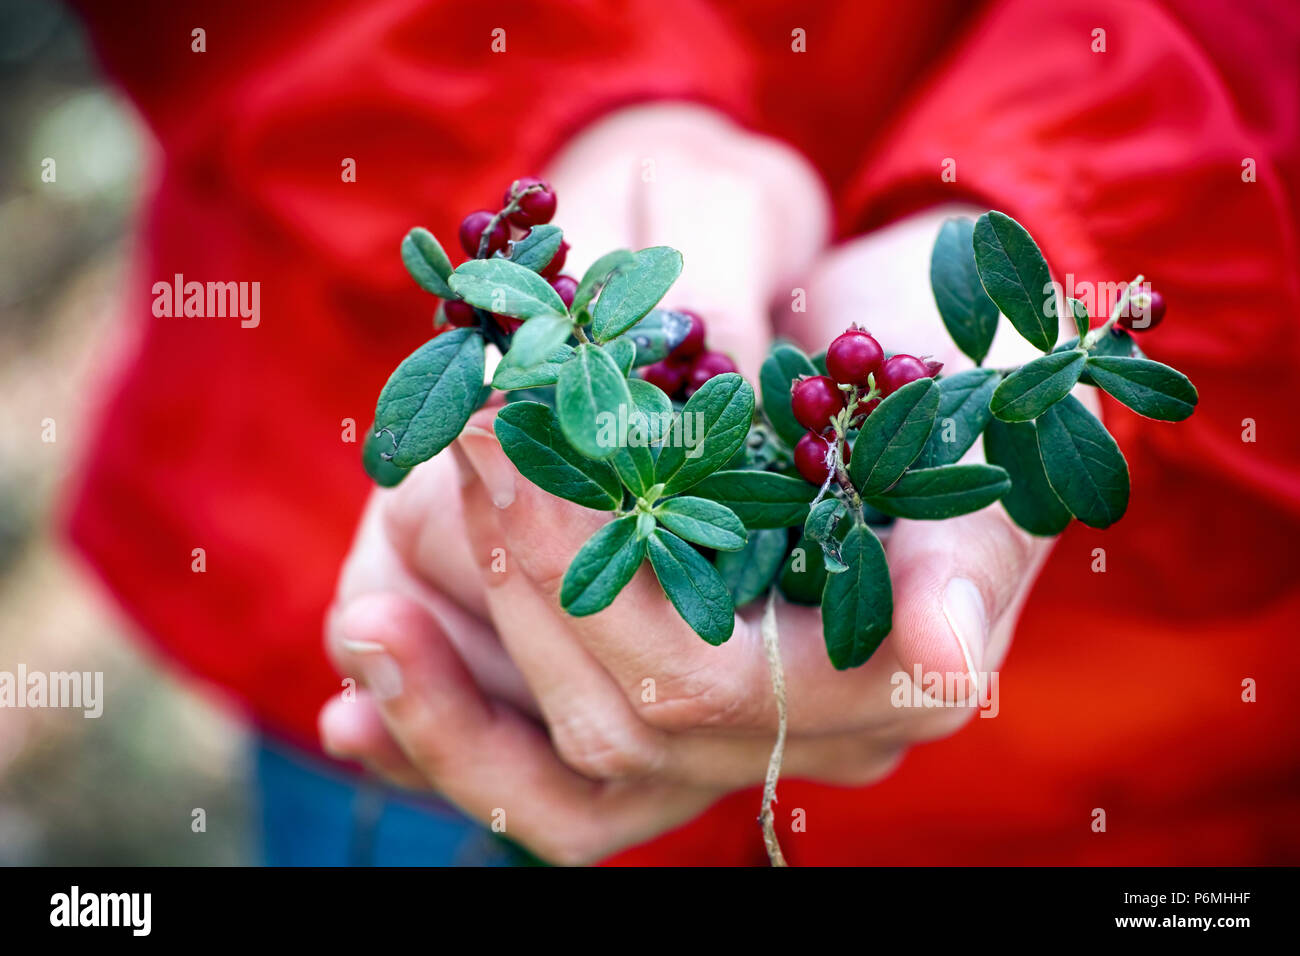 Cowberries twigs with berries and leaves in the woman hands. Close-up. - Stock Image